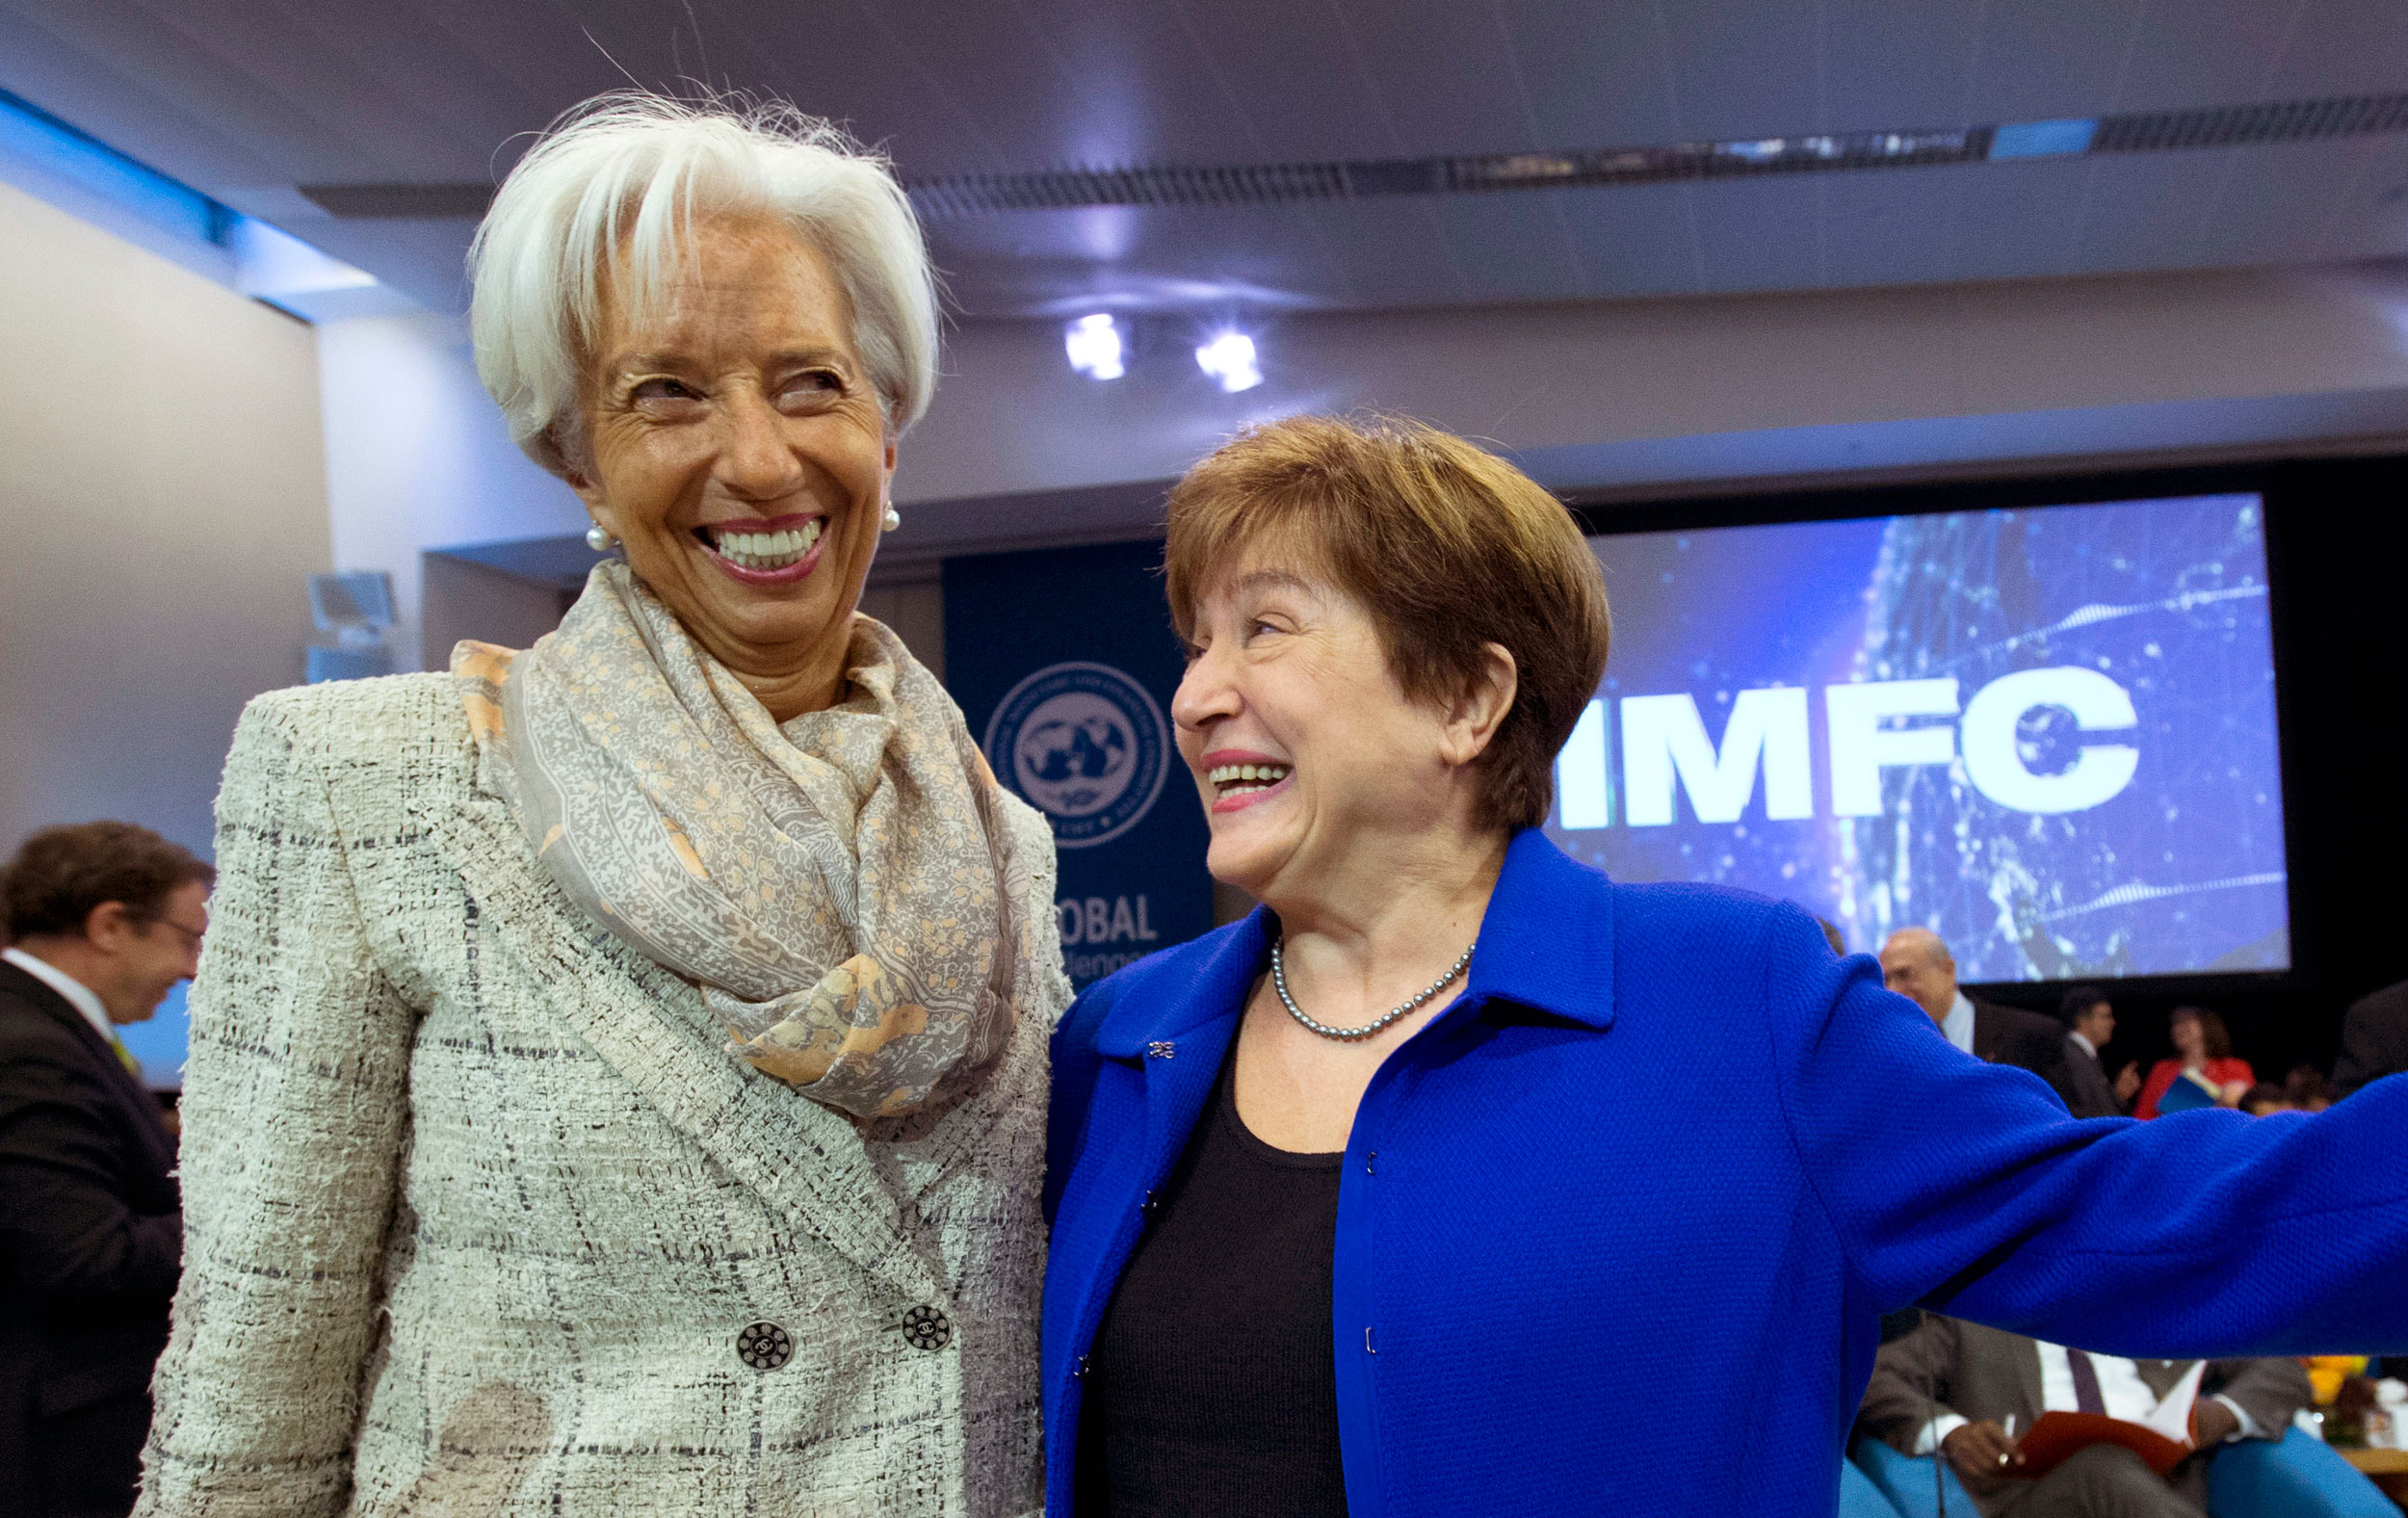 Former IMF managing director Christine Lagarde (left) with Kristalina Georgieva in Washington on Saturday.